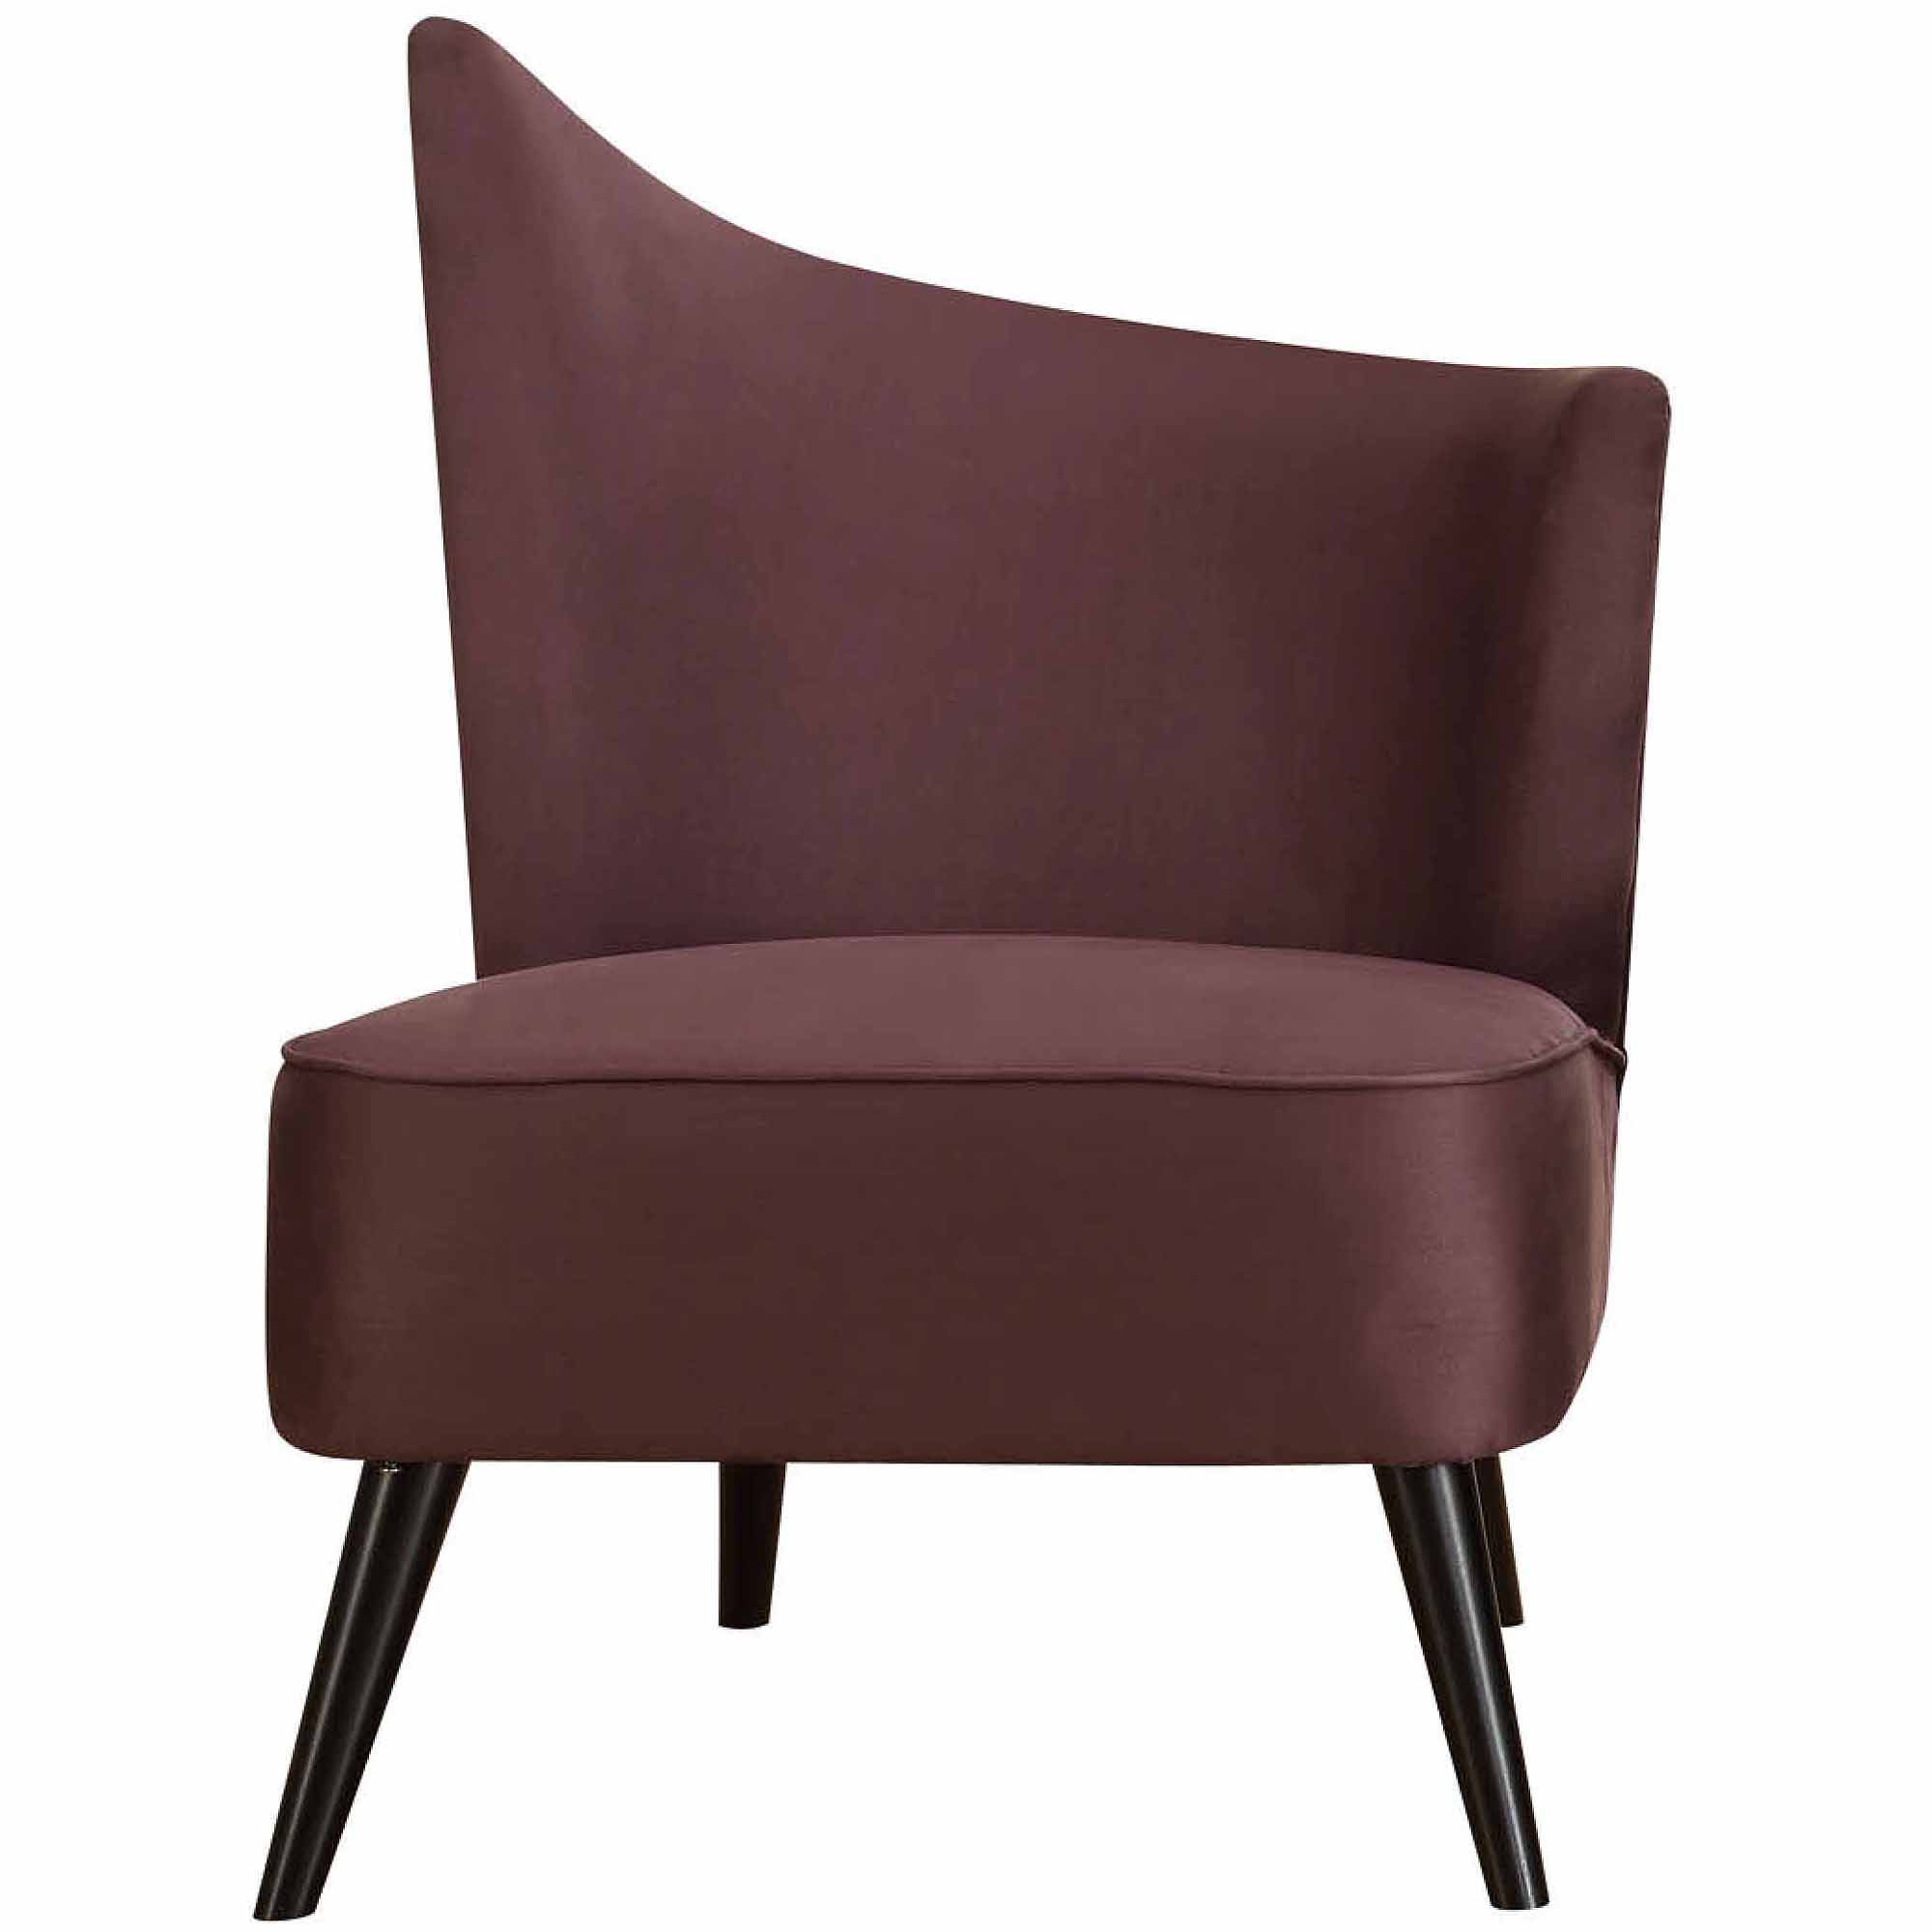 Elegant Accent Chair with Flaired Back, Purple Microfiber (Box 1 of 2)